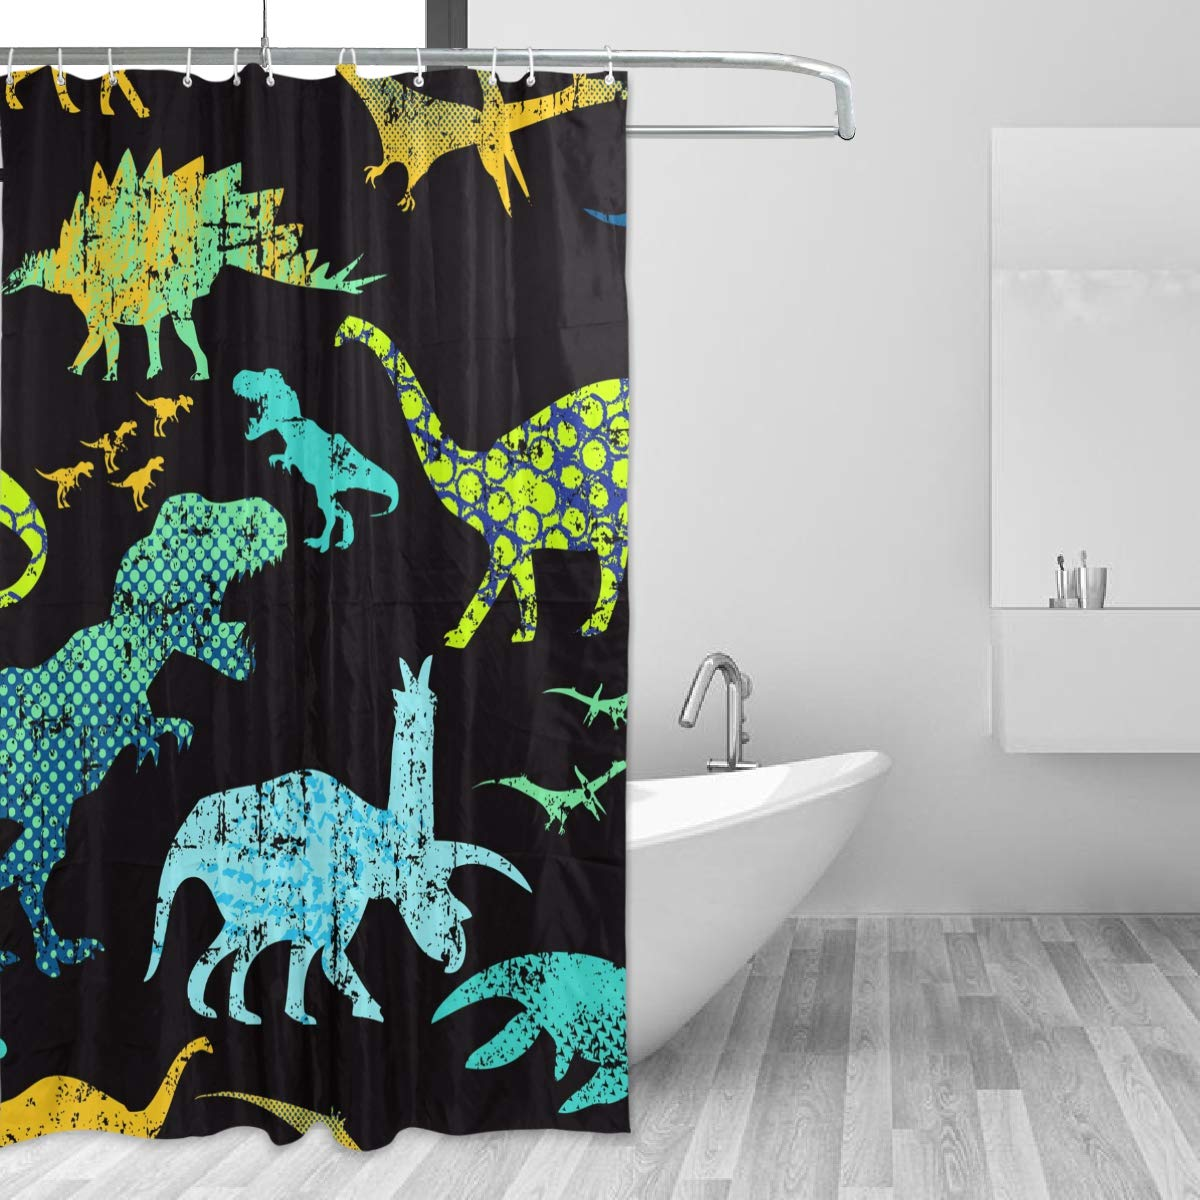 ae359a5de38 Amazon.com  TaTaisu Spa Shower Curtain with Hooks Dinosaur Black for  Bathroom and Bathtubs Decoration Decor 60x72 inches  Home   Kitchen